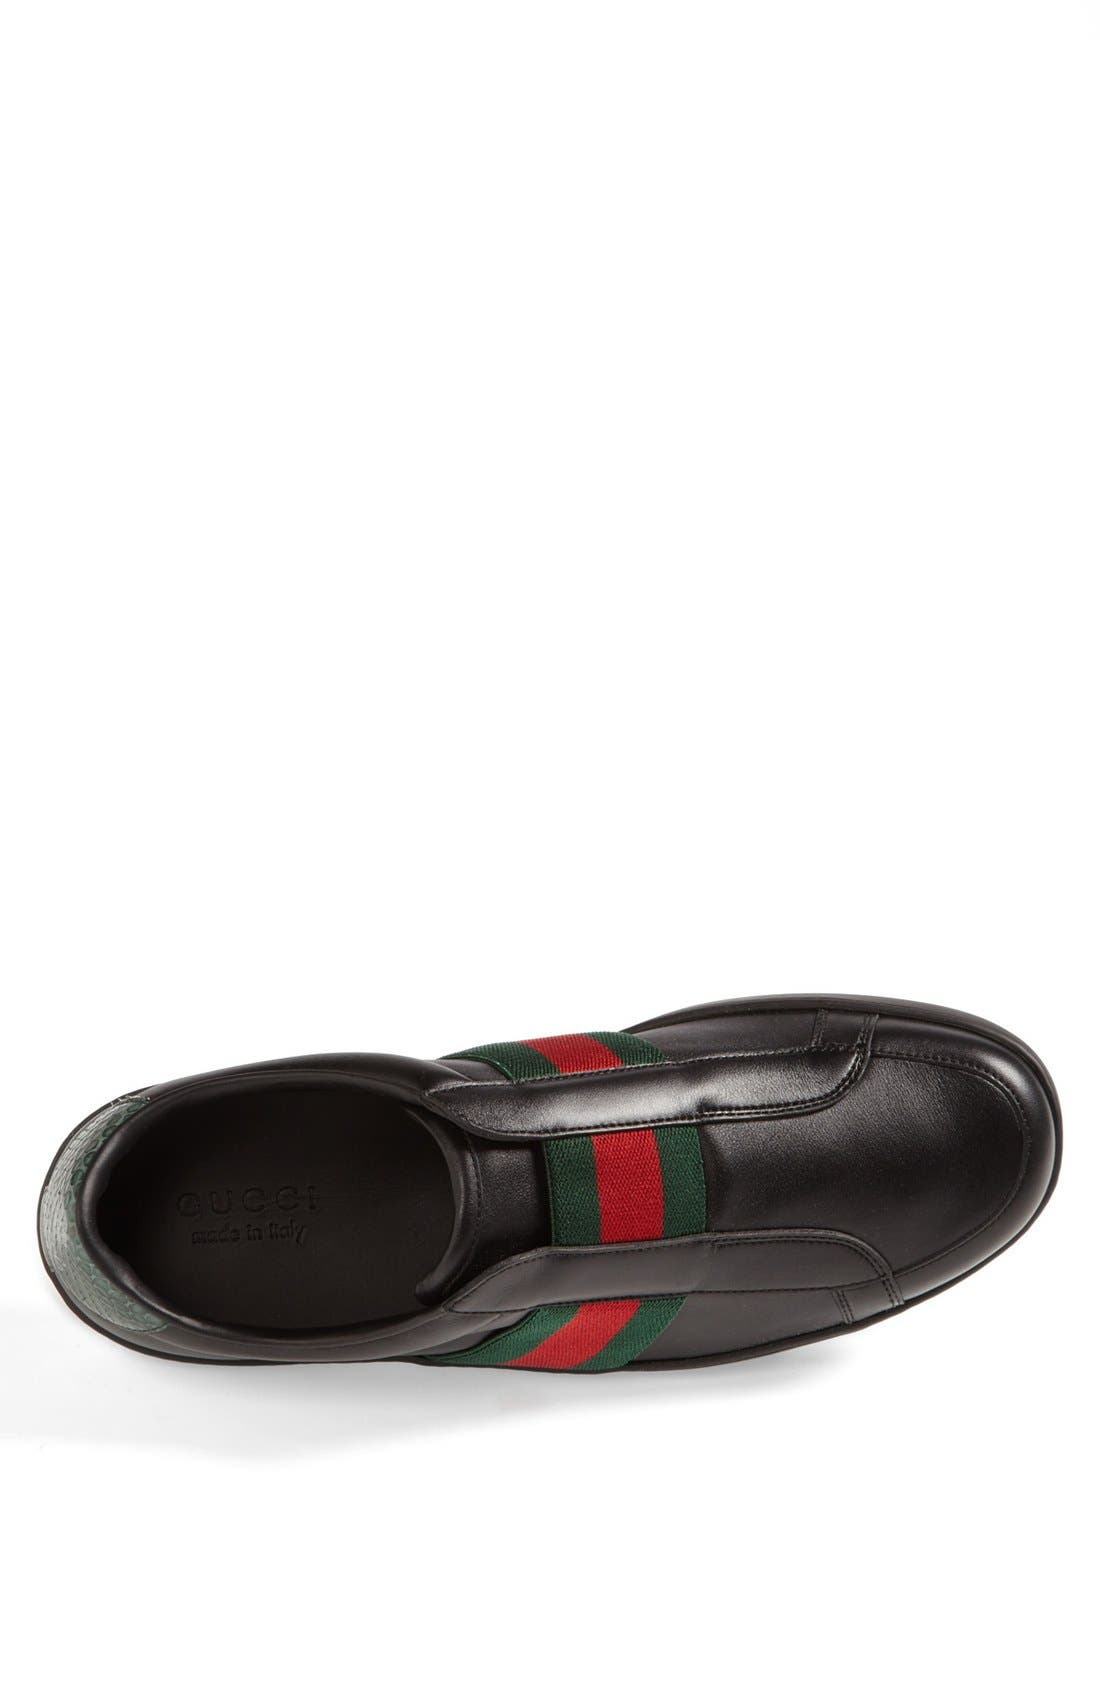 Alternate Image 3  - Gucci 'Brooklyn' Slip-On